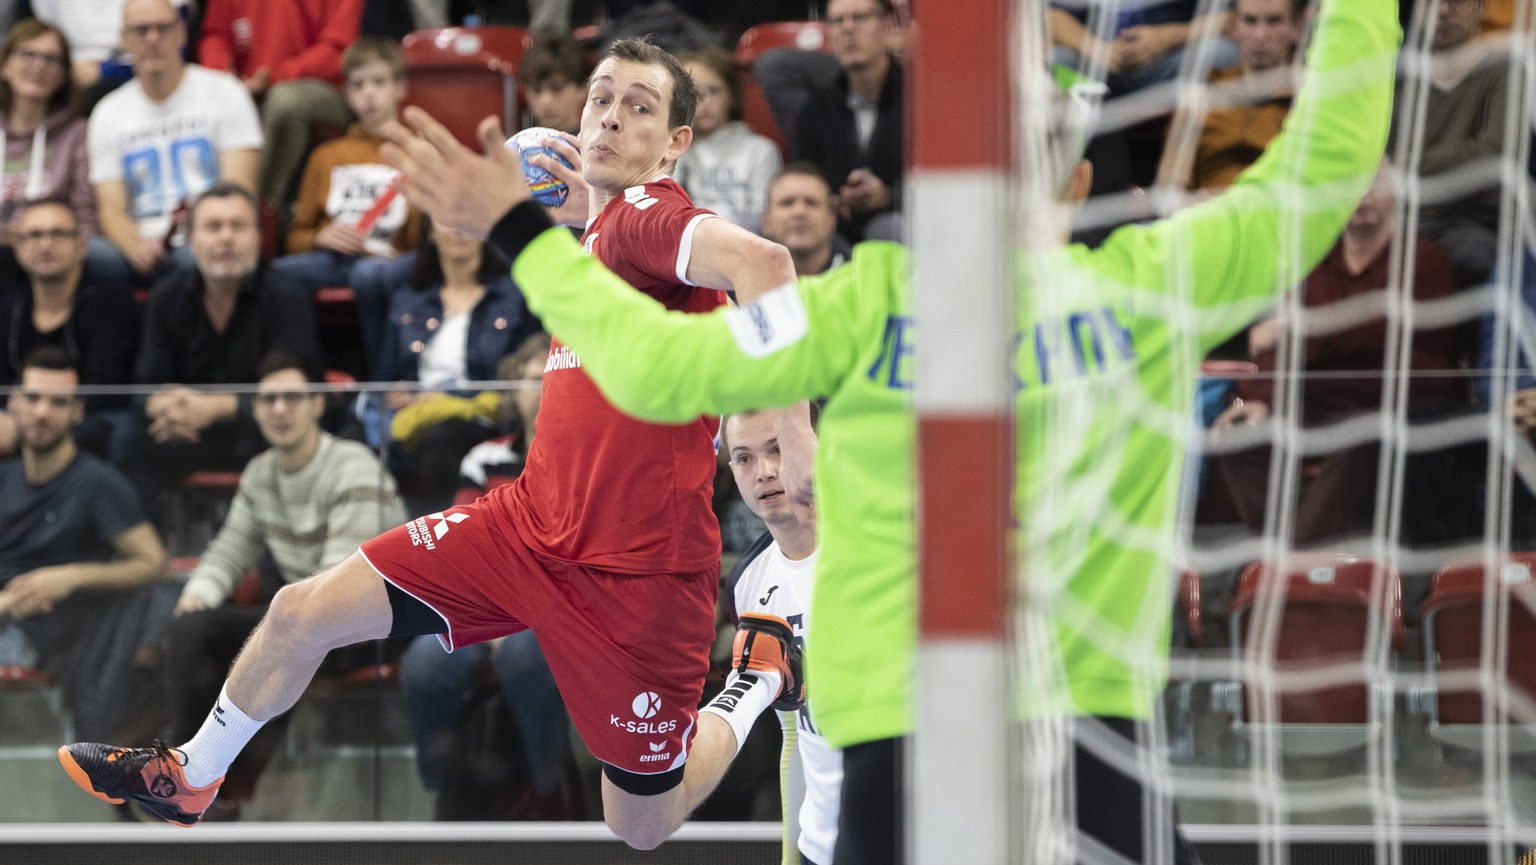 Switzerland's Marvin Lier, left, in action against Anton Terekhov, right, during the Yellow Cup Handball game between Switzerland and Ukraine in Switzerland, Winterthur, Friday 03 January 2020. (KEYSTONE/Ennio Leanza)